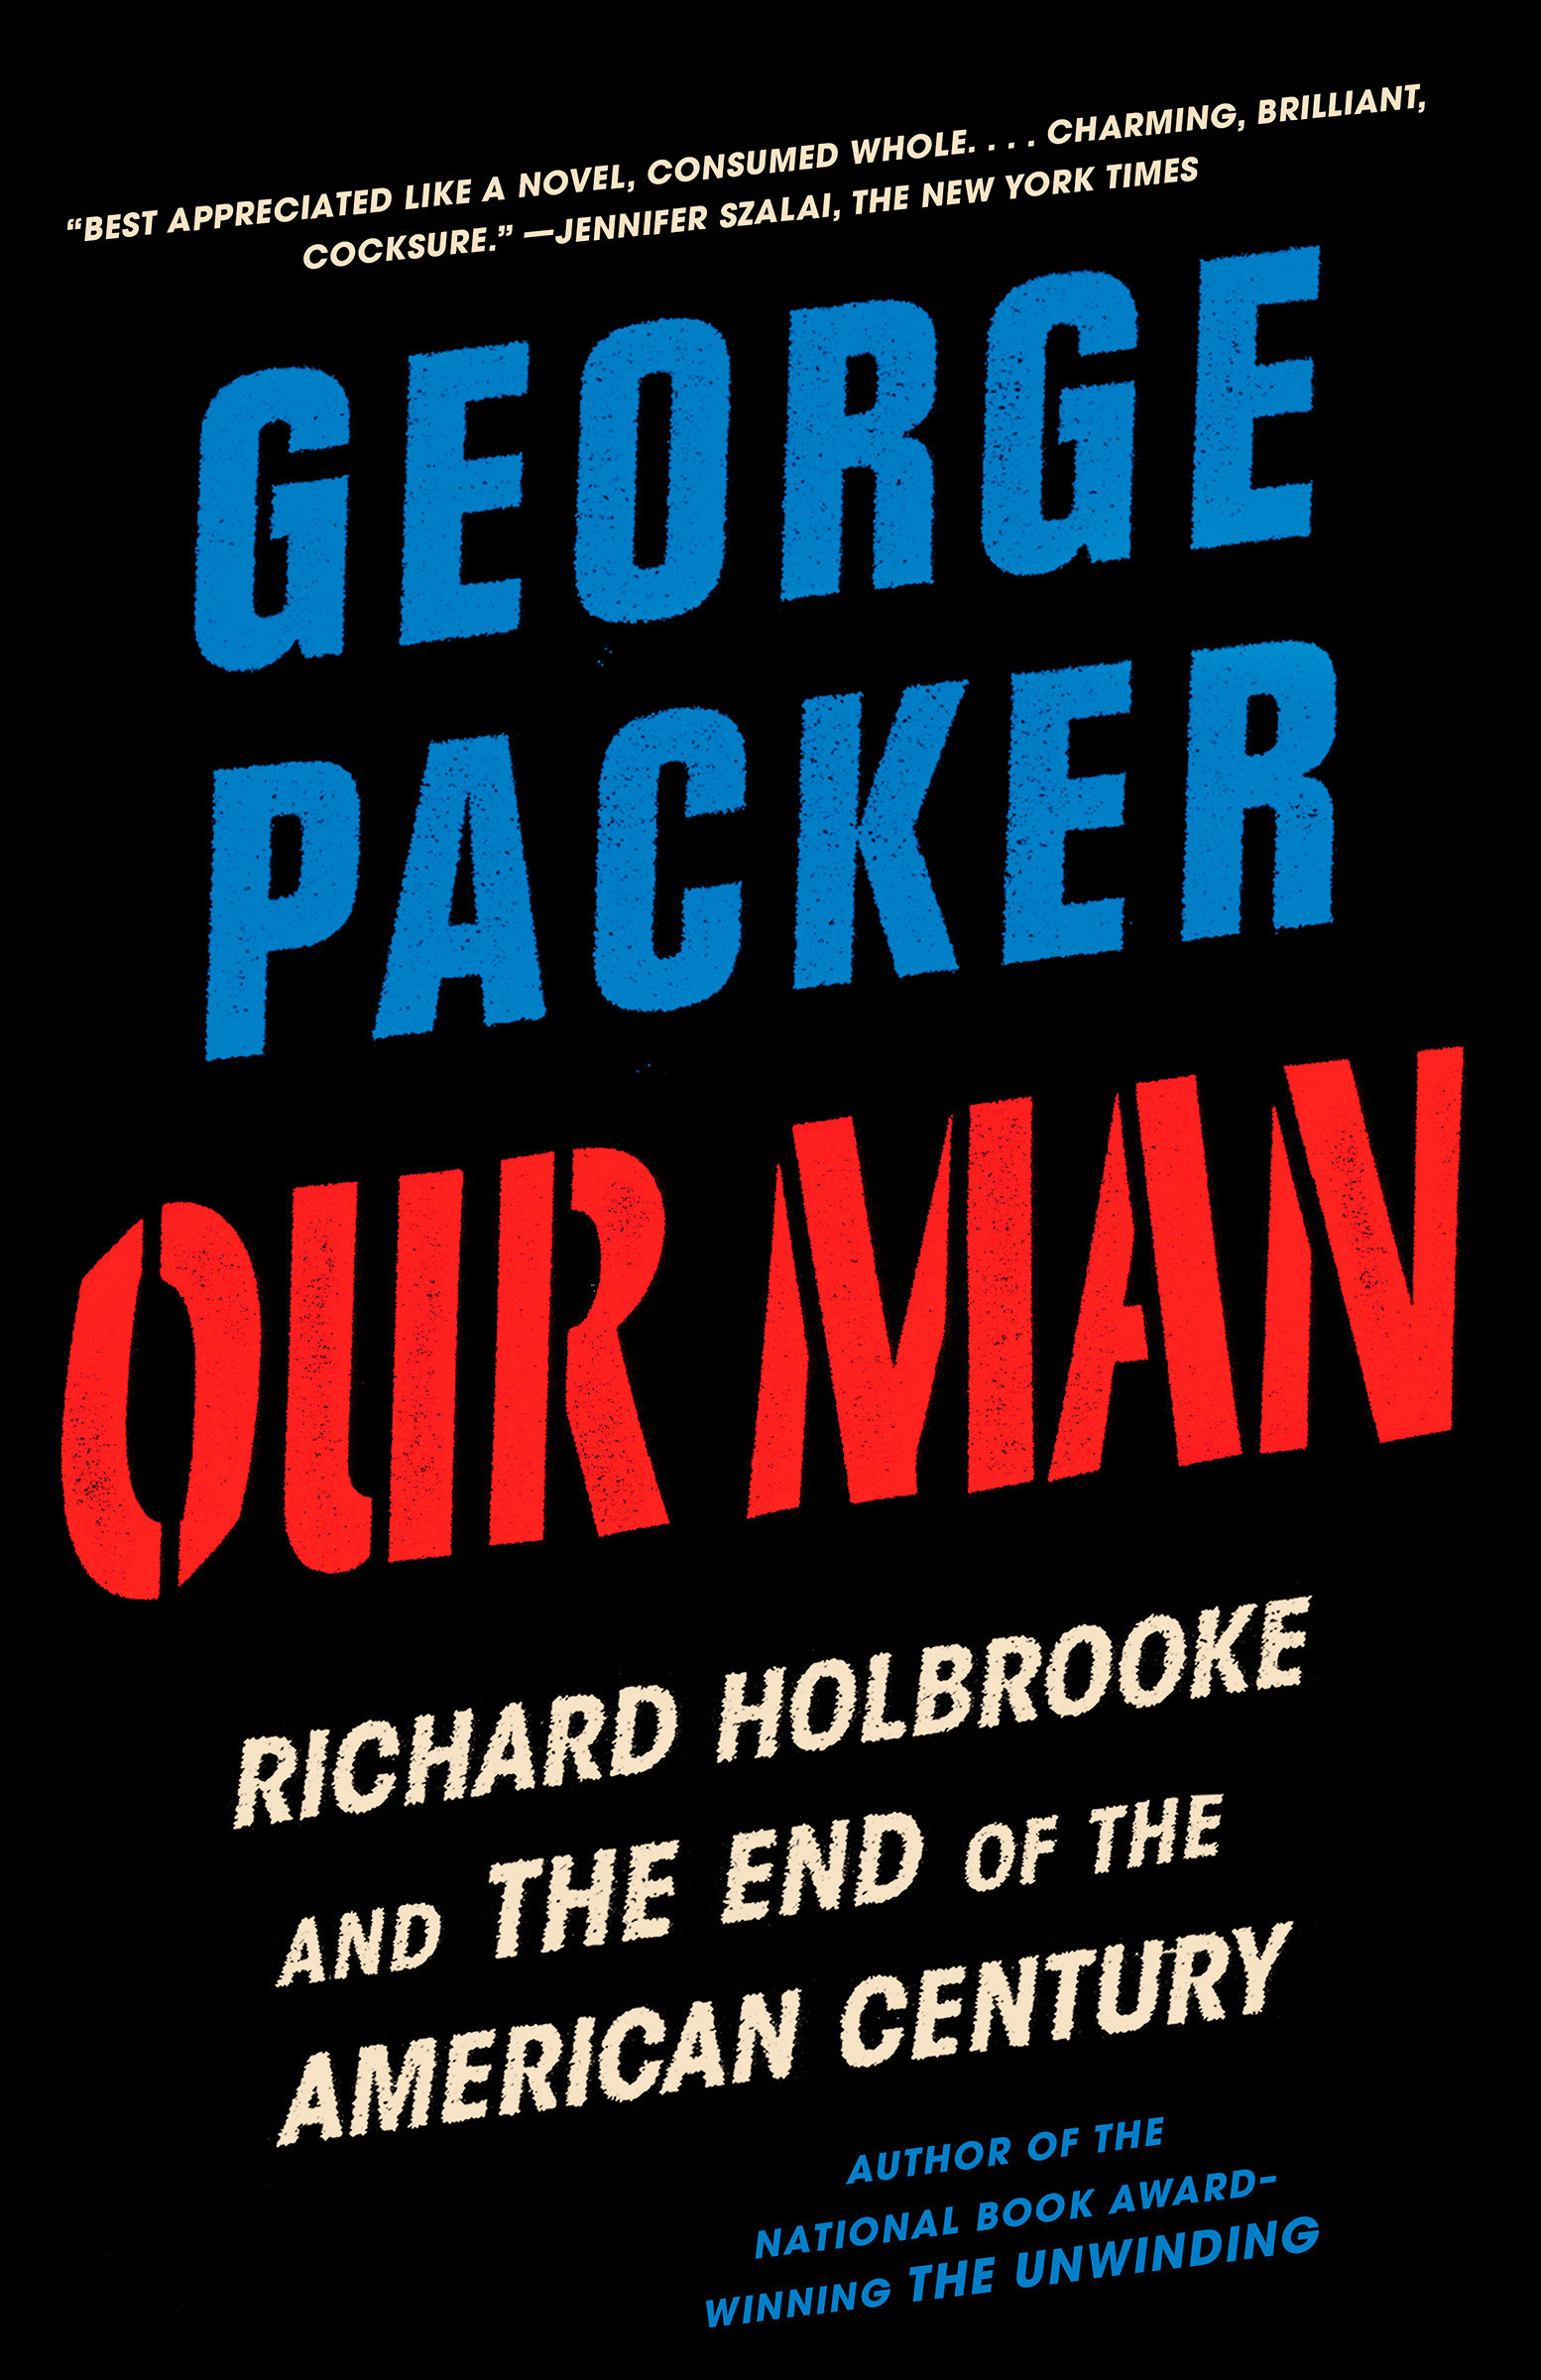 Our Man Richard Holbrooke and the End of the American Century